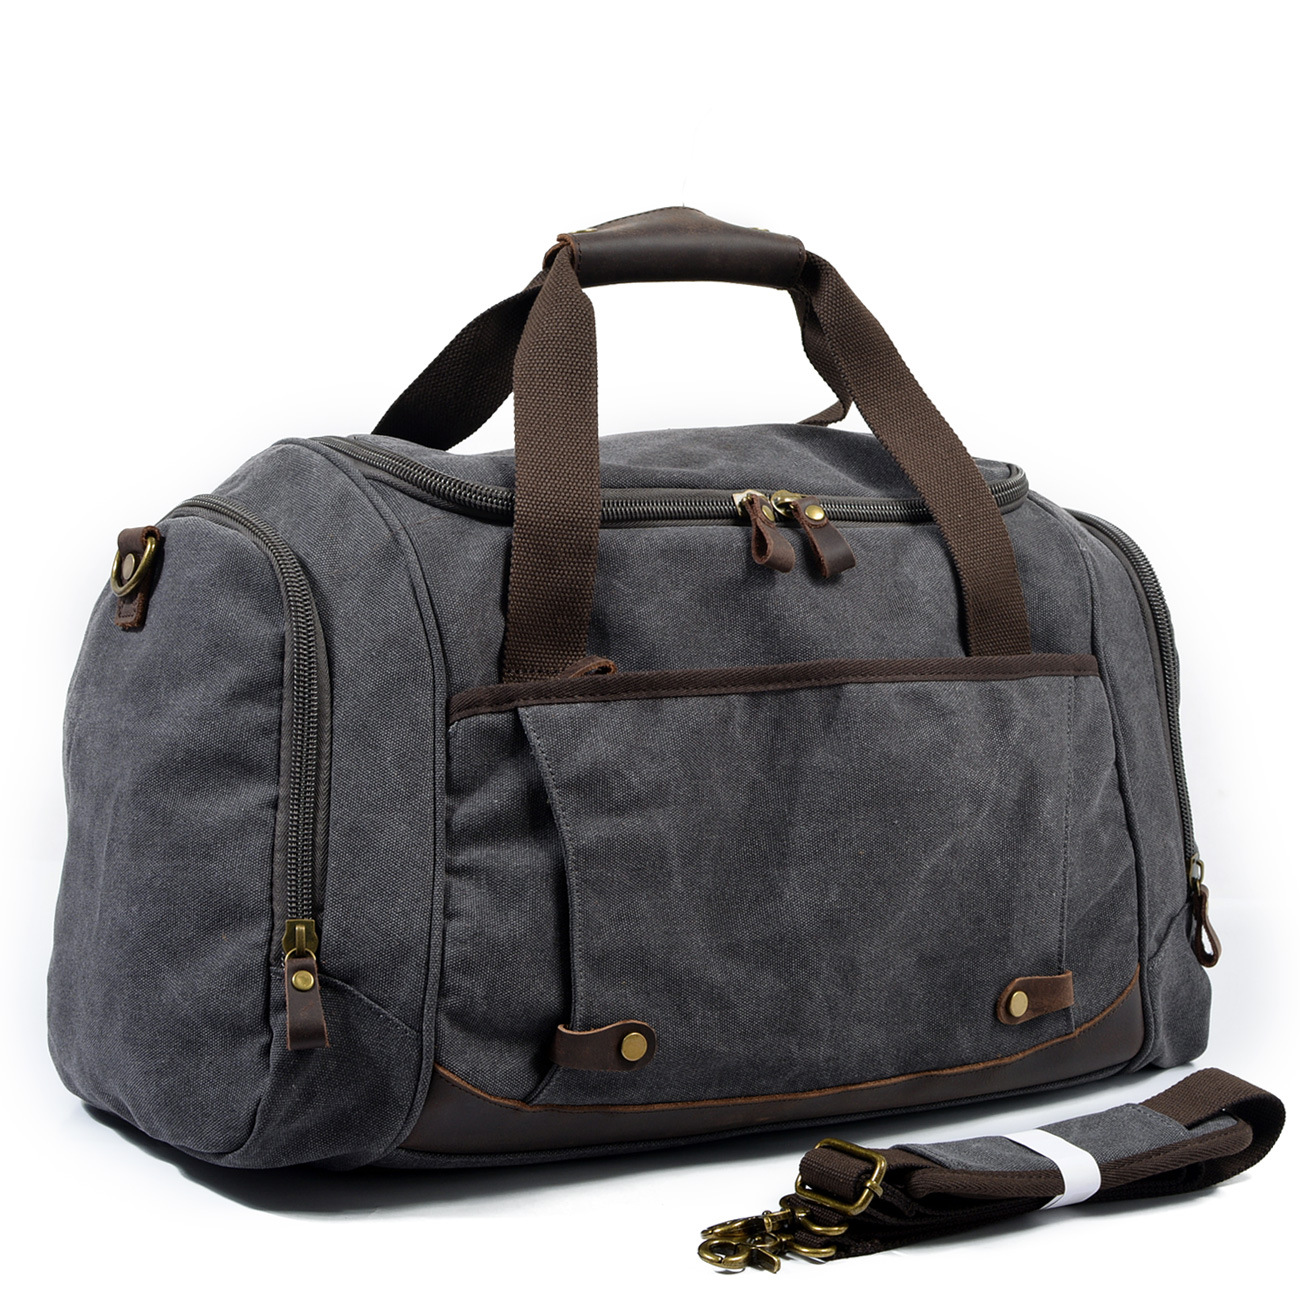 Waterproof Duffel Bag Men Canvas Carry Weekender Bag Vintage Military Shoulder Handbag Leather Travel Tote Large Overnight Bag